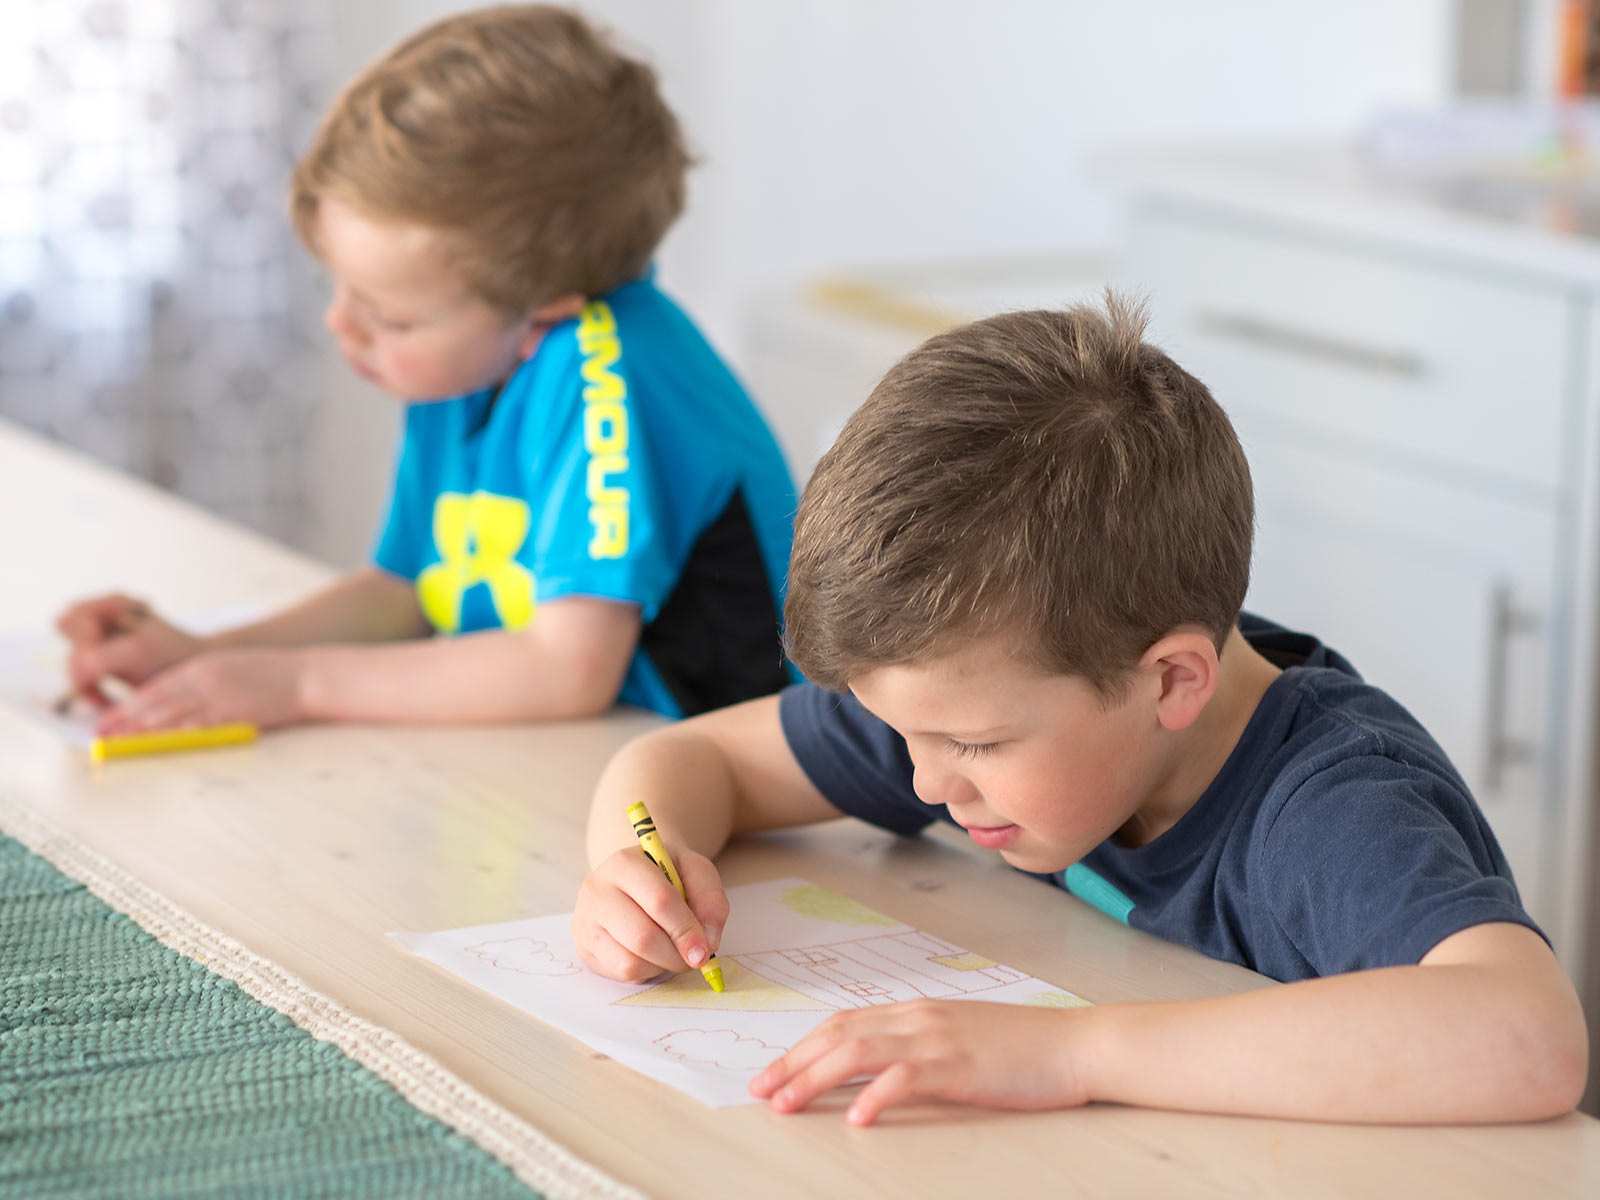 Two young boys coloring pictures at a table